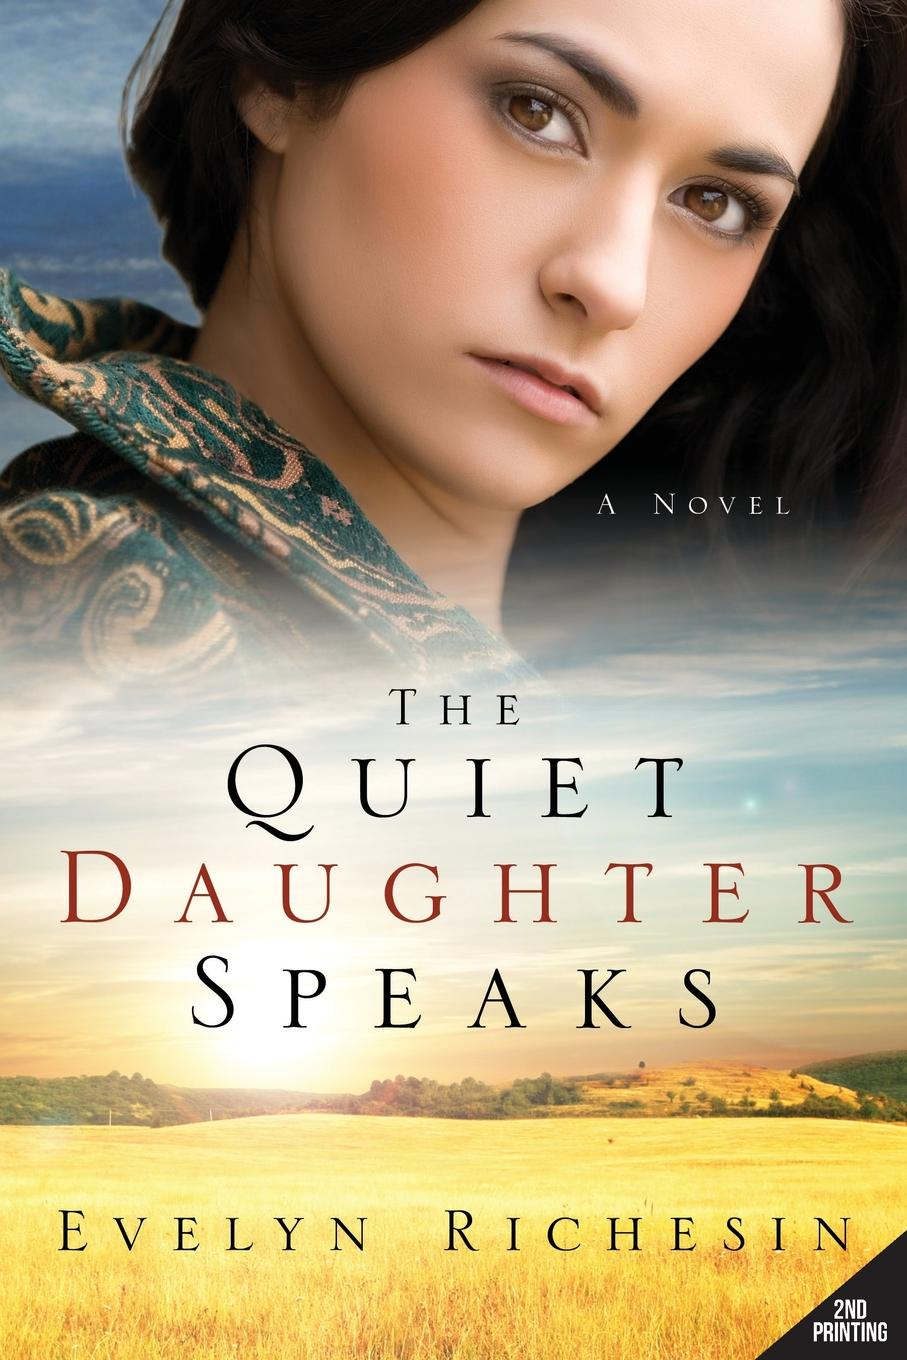 Evelyn Richesin The Quiet Daughter Speaks (the Quiet Daughter Series) susan fox an arranged marriage